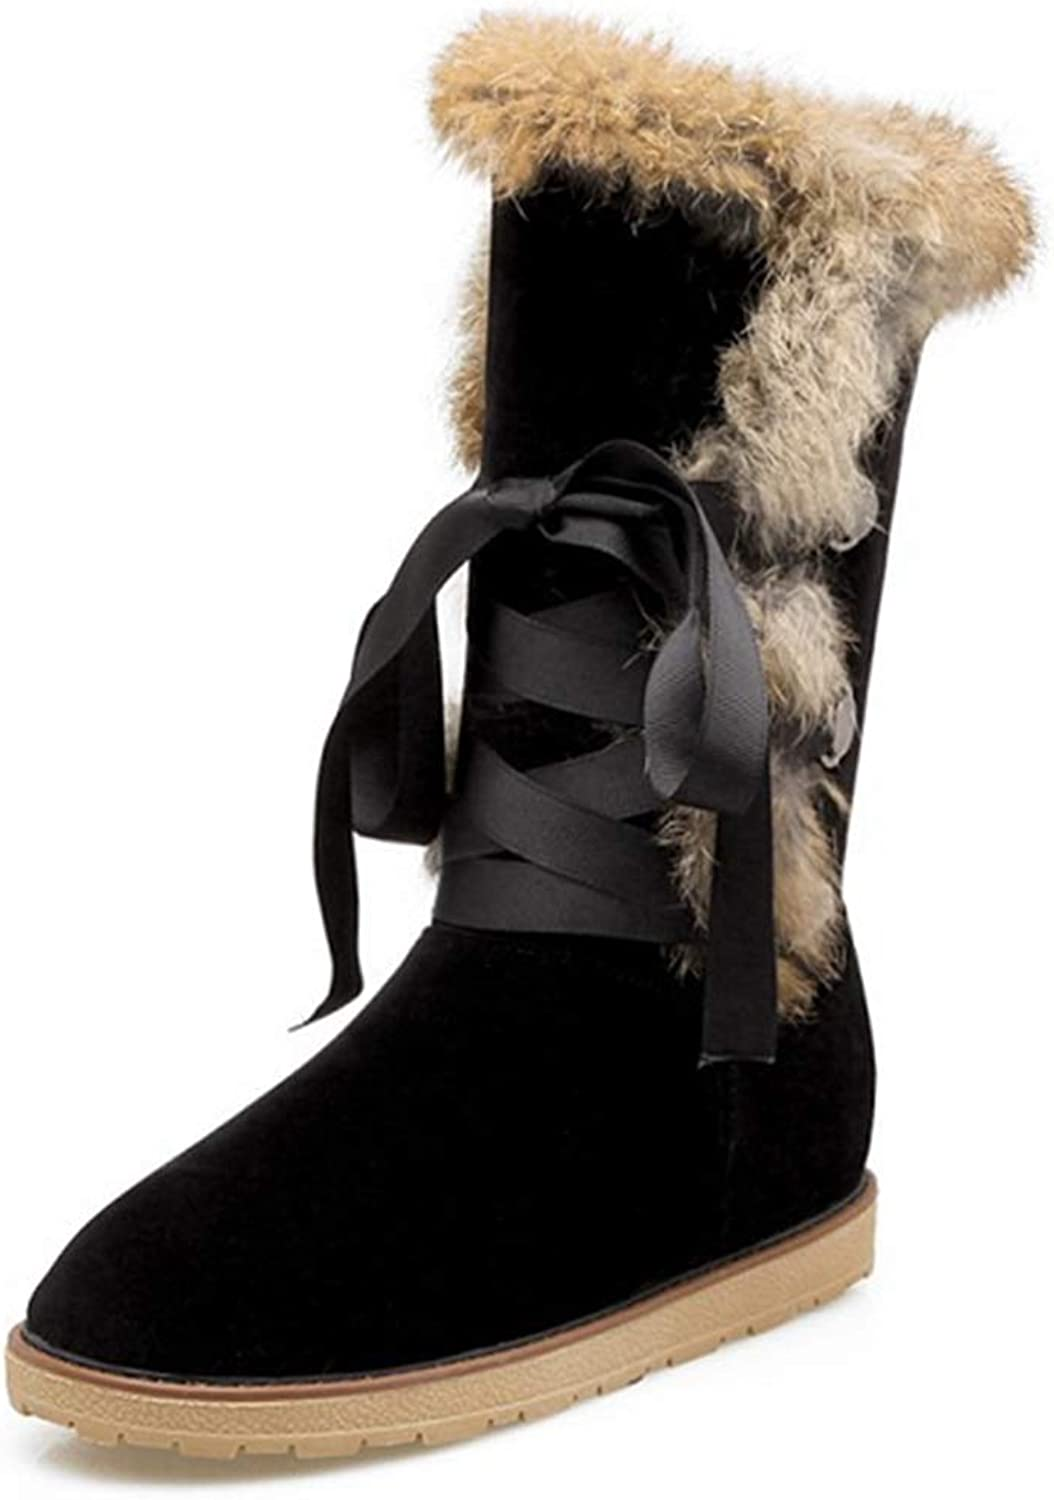 GIY Women's Mid-Calf Snow Boots Suede Leather Lace Up Warm Fur Low Heel Slip On Flat Heel Boots